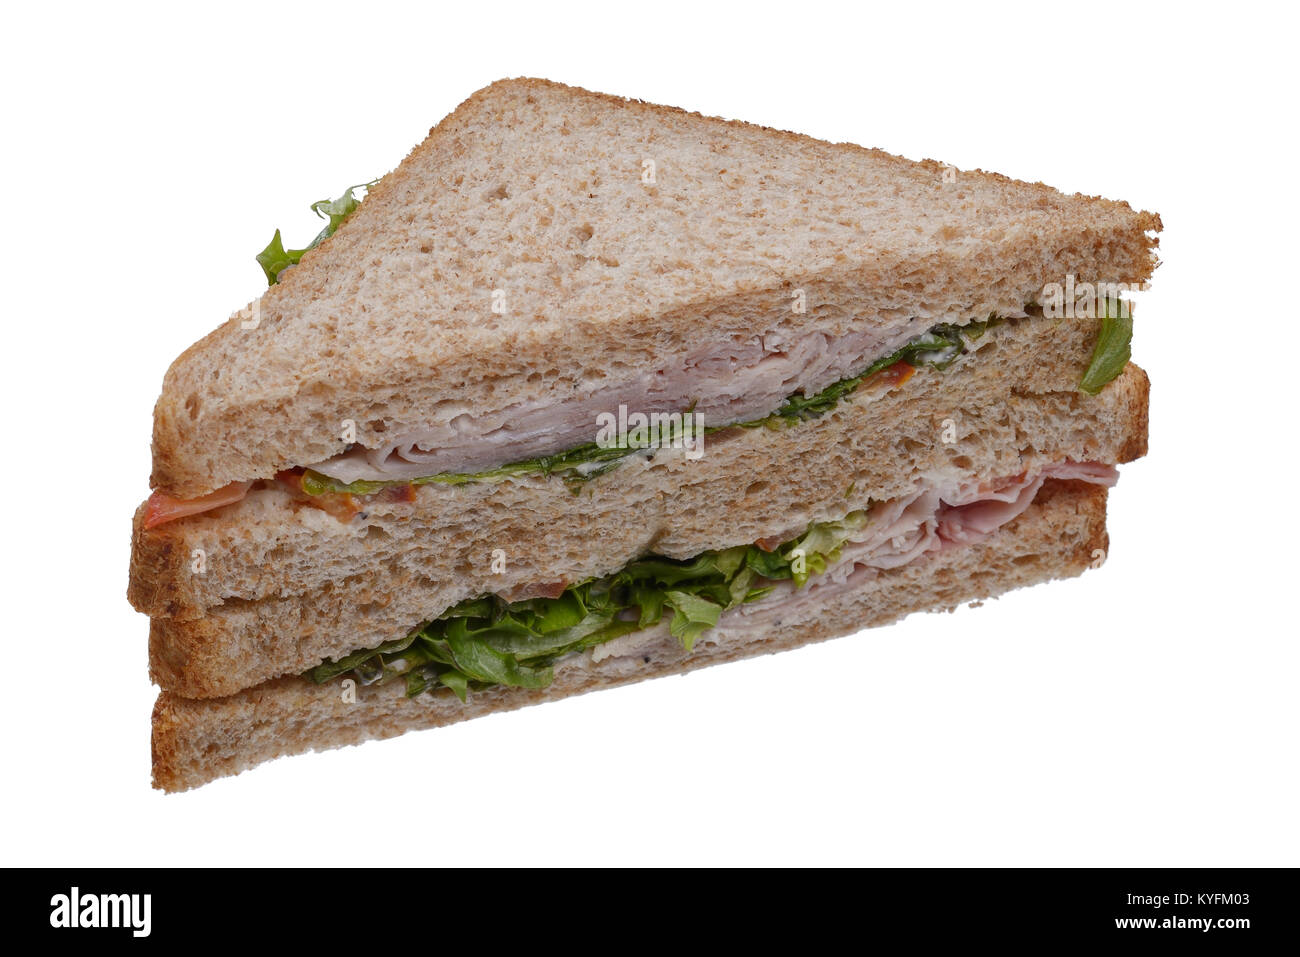 Shop bought ham and salad sandwich on brown bread - Stock Image